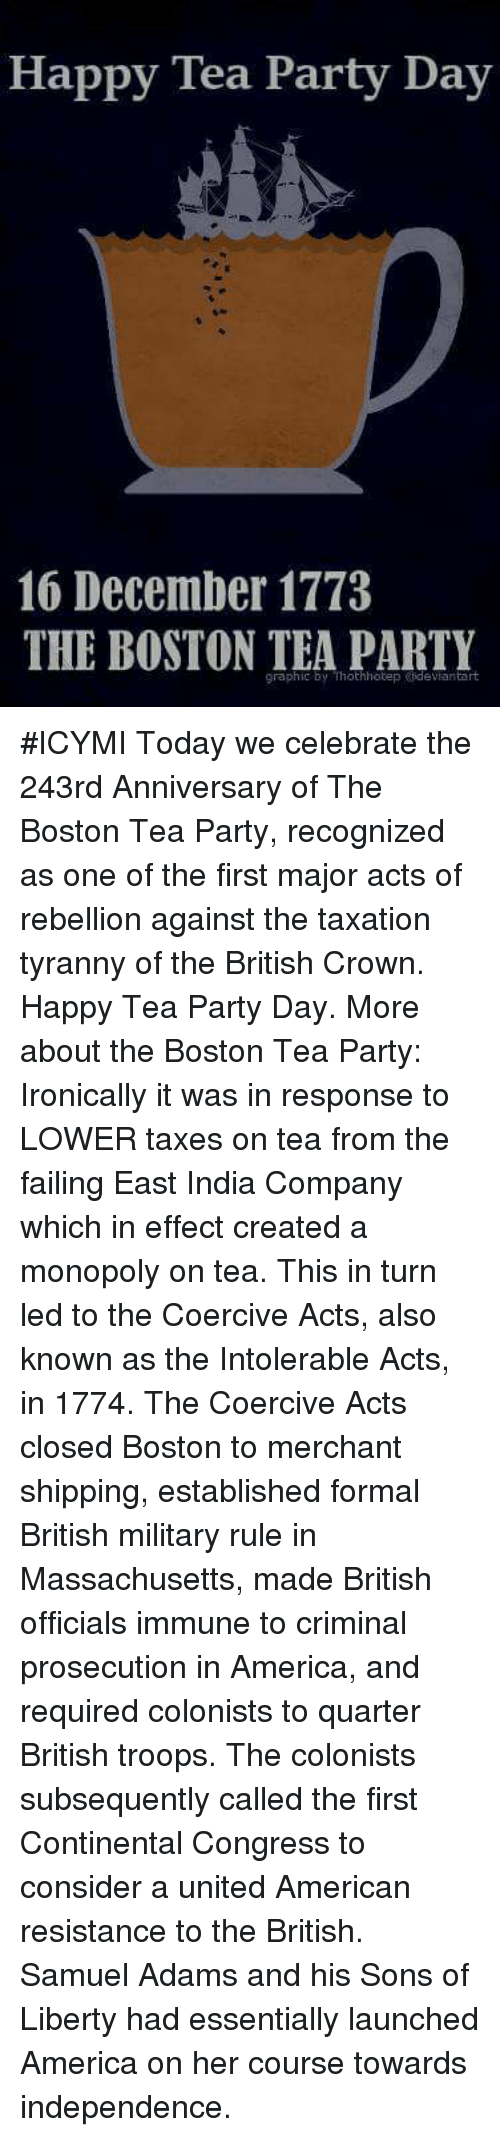 Fail, Memes, and Monopoly: Happy Tea Party Day  16 December 1773  THE BOSTON TEA PARTY  graphic by Thothhotep erdevianta #ICYMI Today we celebrate the 243rd Anniversary of The Boston Tea Party, recognized as one of the first major acts of rebellion against the taxation tyranny of the British Crown.  Happy Tea Party Day. More about the Boston Tea Party:   Ironically it was in response to LOWER taxes on tea from the failing East India Company which in effect created a monopoly on tea. This in turn led to the Coercive Acts, also known as the Intolerable Acts, in 1774. The Coercive Acts closed Boston to merchant shipping, established formal British military rule in Massachusetts, made British officials immune to criminal prosecution in America, and required colonists to quarter British troops. The colonists subsequently called the first Continental Congress to consider a united American resistance to the British. Samuel Adams and his Sons of Liberty had essentially launched America on her course towards independence.